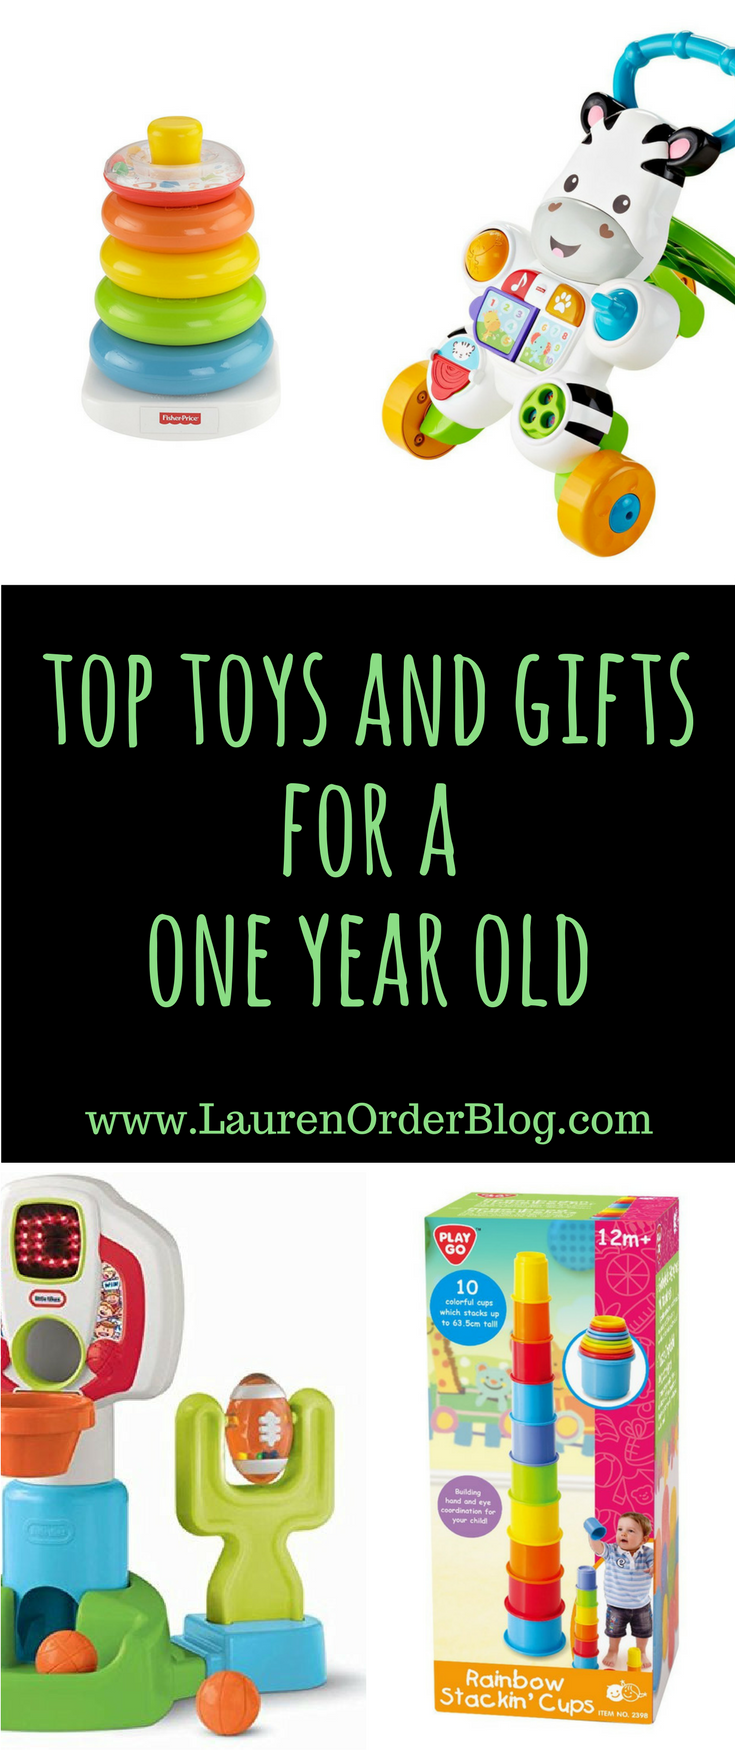 Toys For Girls 18 Months : Top toys for your month old